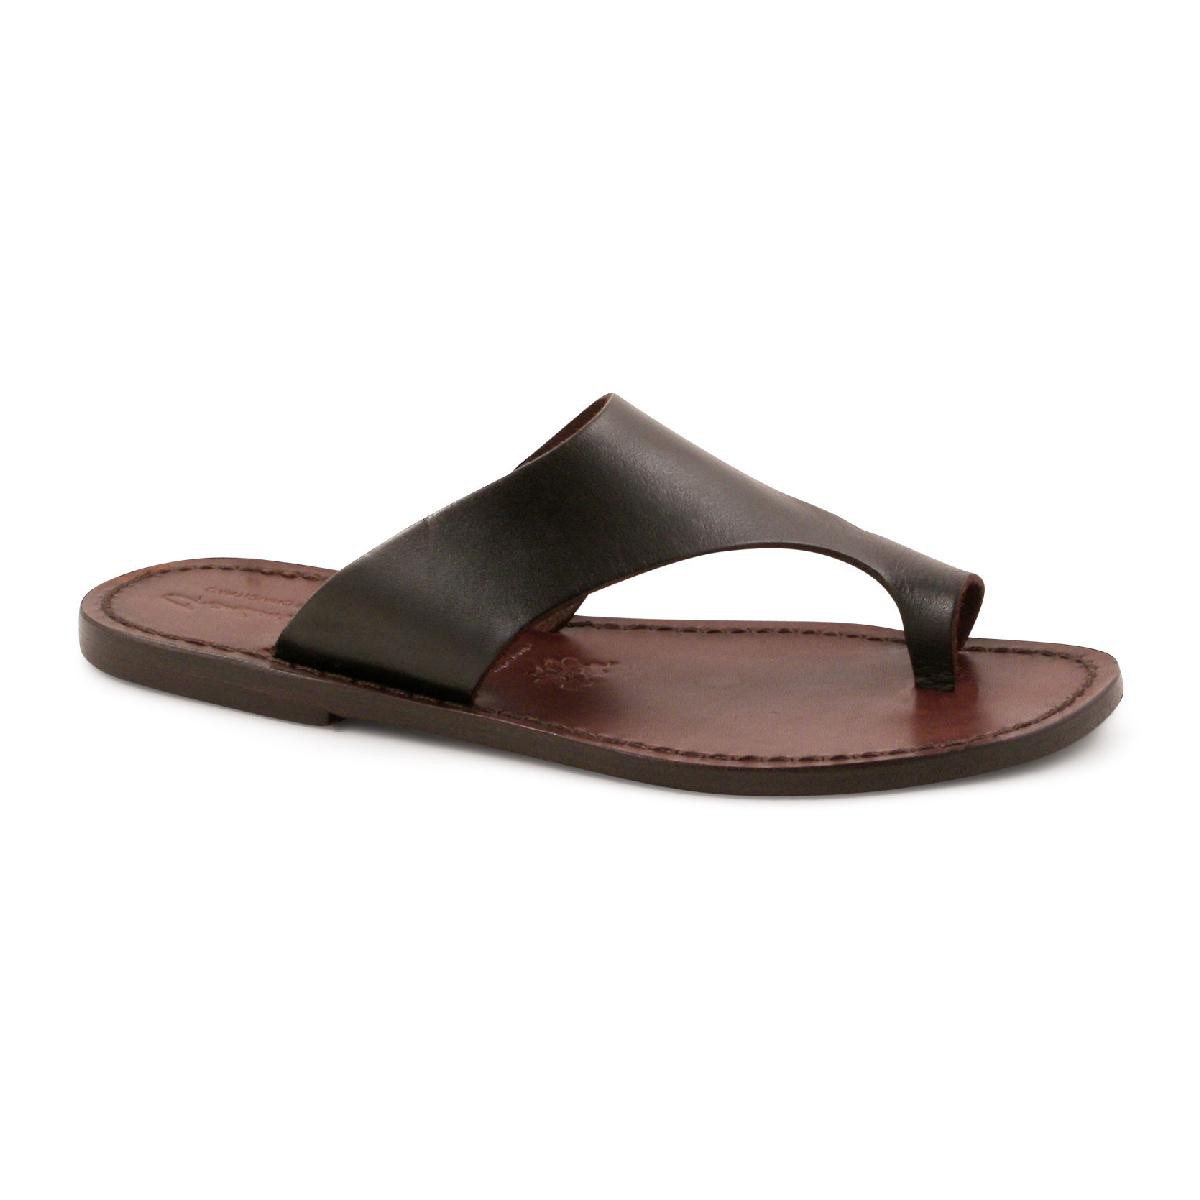 Lastest  Brown Leather Thong Sandals  Womens Leather Flats  Flat Sandals